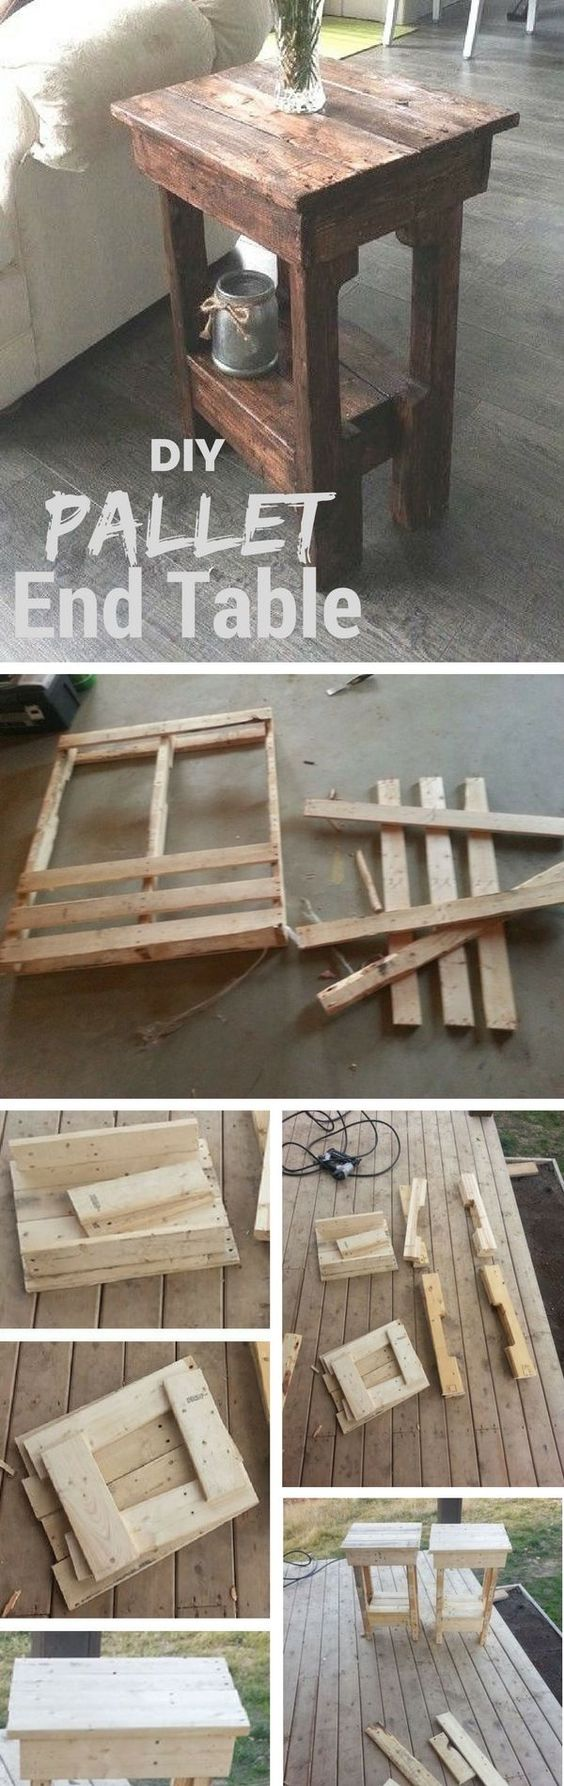 Easy DIY End Table from Wooden Shipping Pallets Tutorial   Instructables